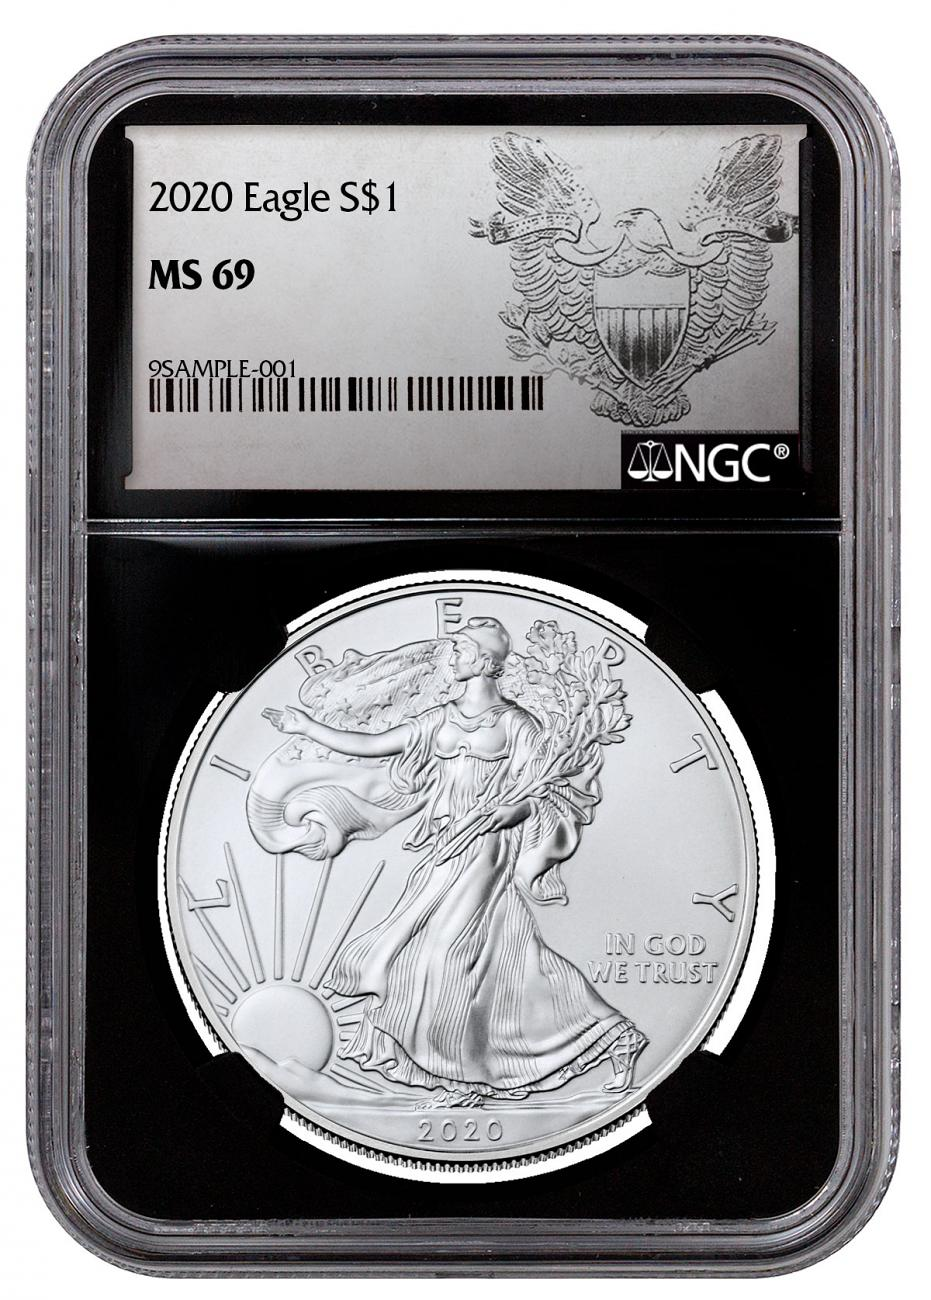 2020 1 oz American Silver Eagle $1 Coin NGC MS69 Black Core Holder Exclusive Heraldic Eagle Label